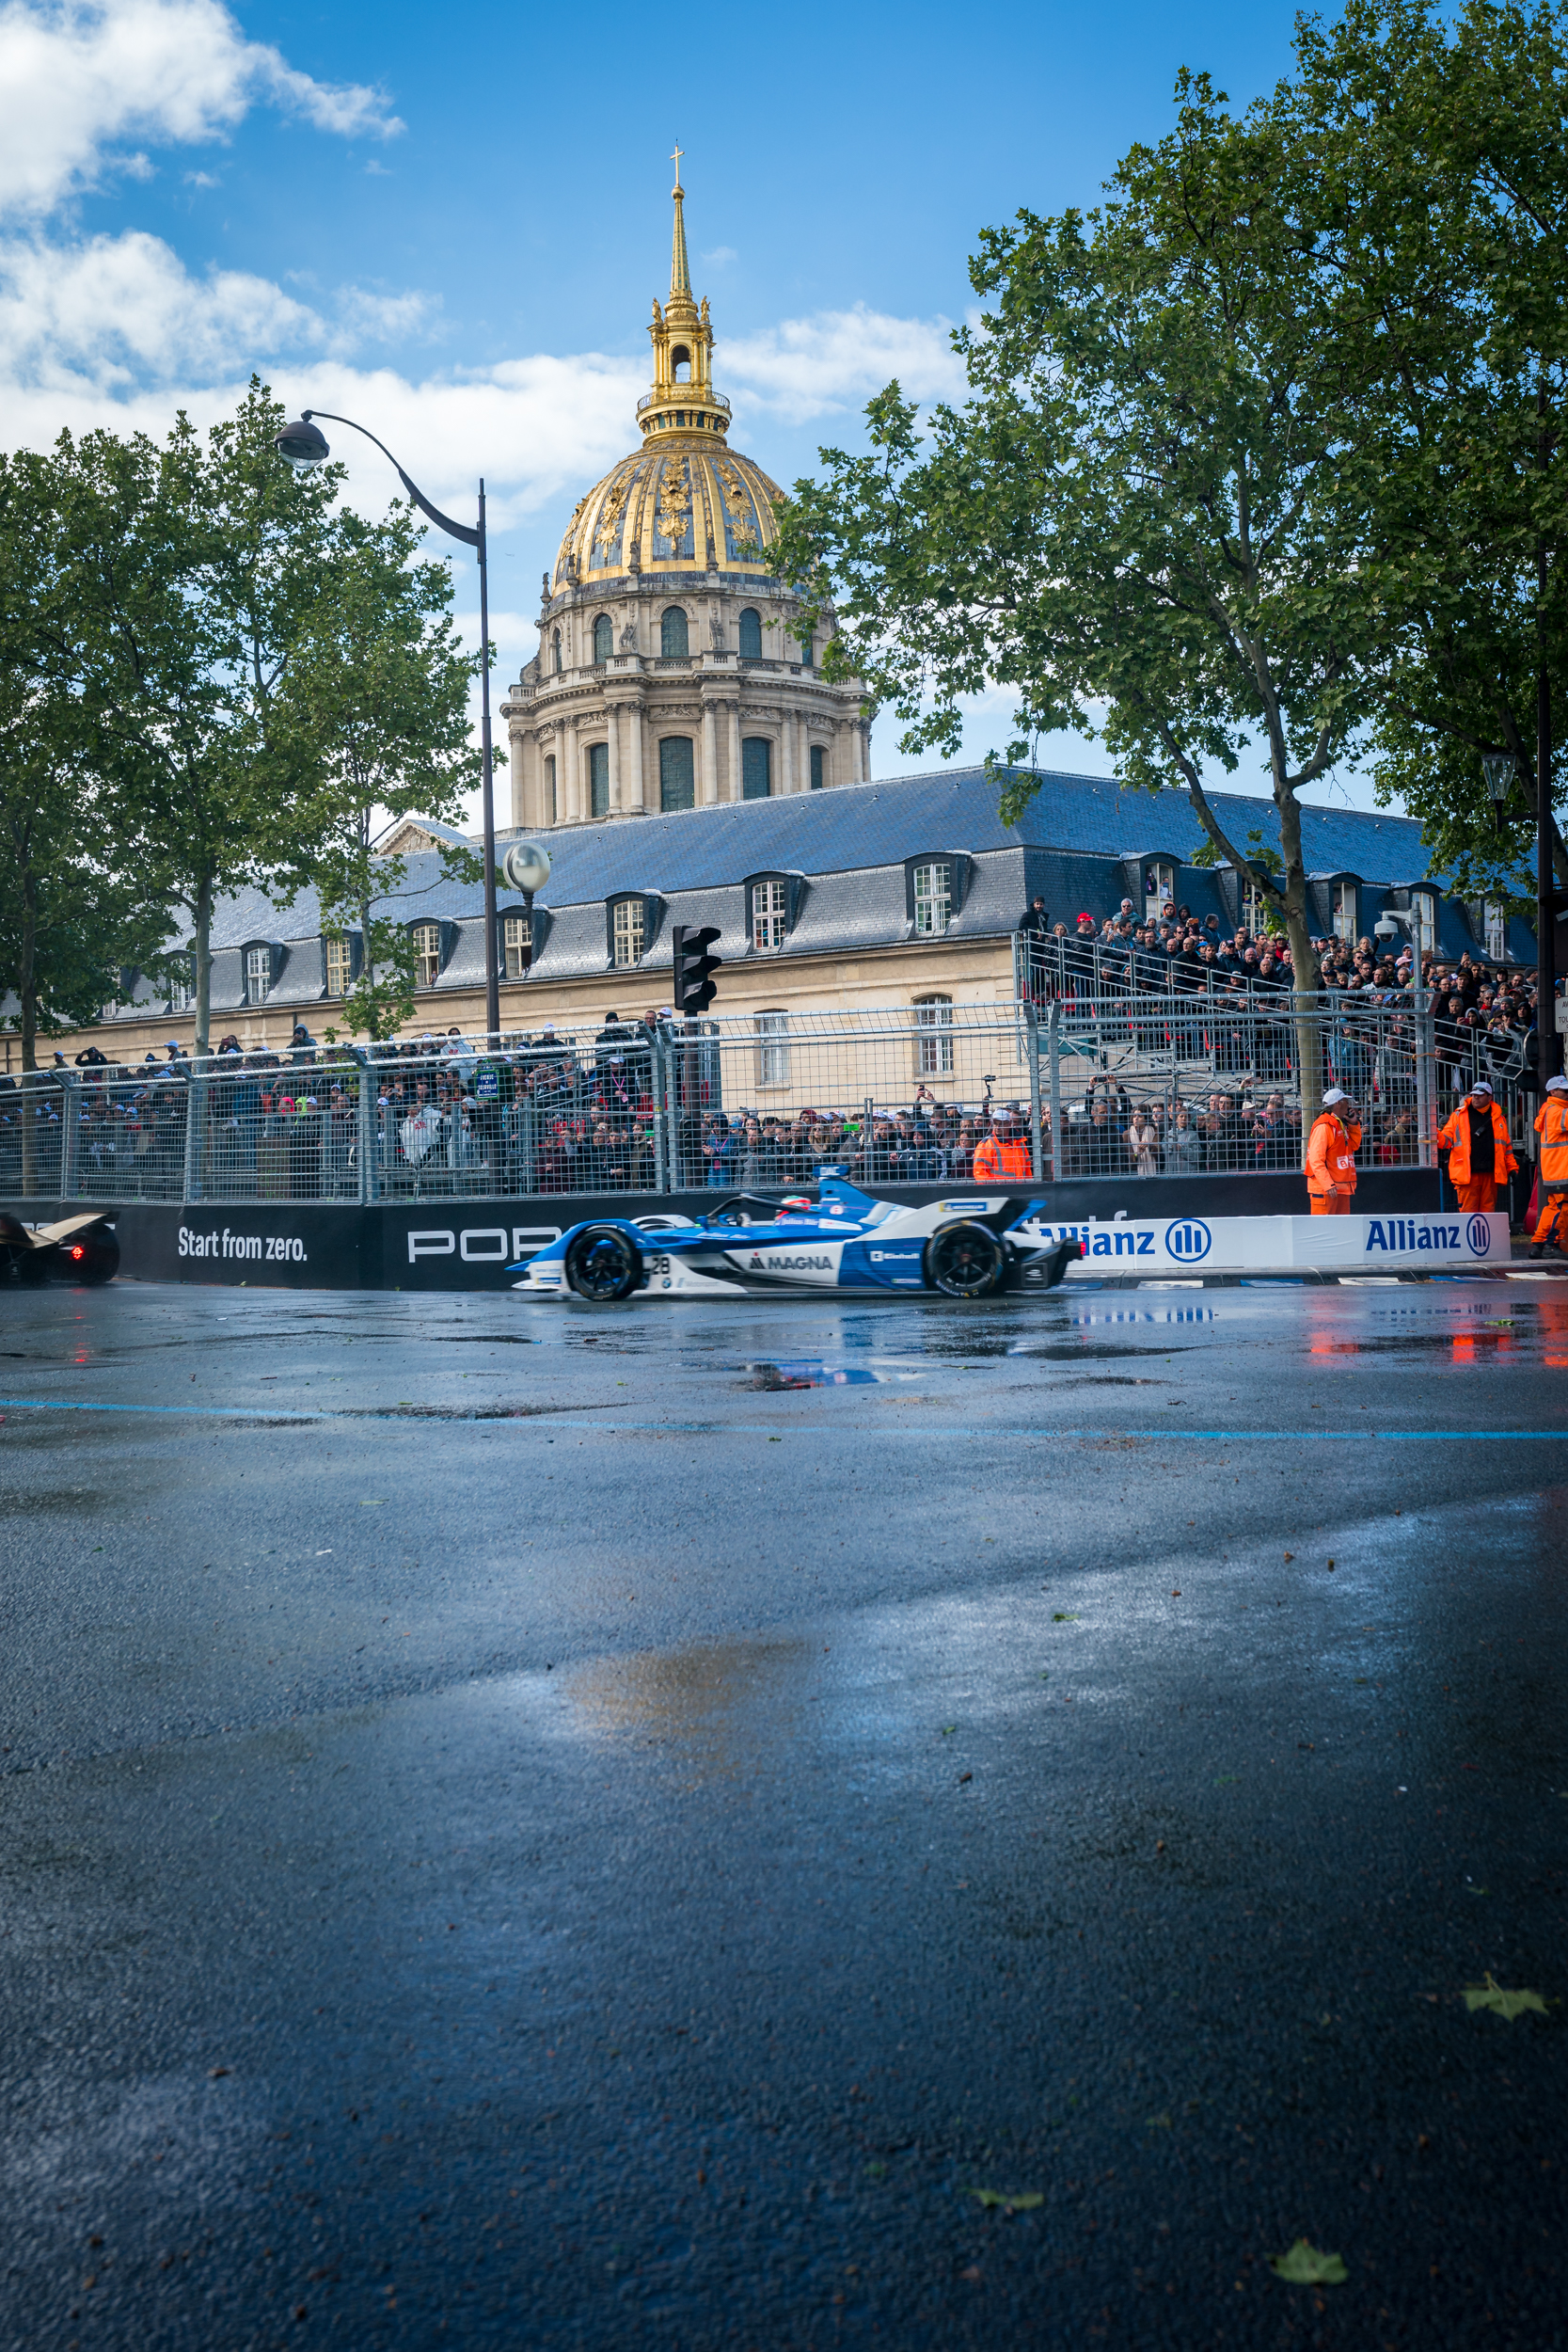 BMW i_Formula E Paris 2019_26&27-04-19_Florian Leger_SHARE & DARE_HD_N°-387.jpg